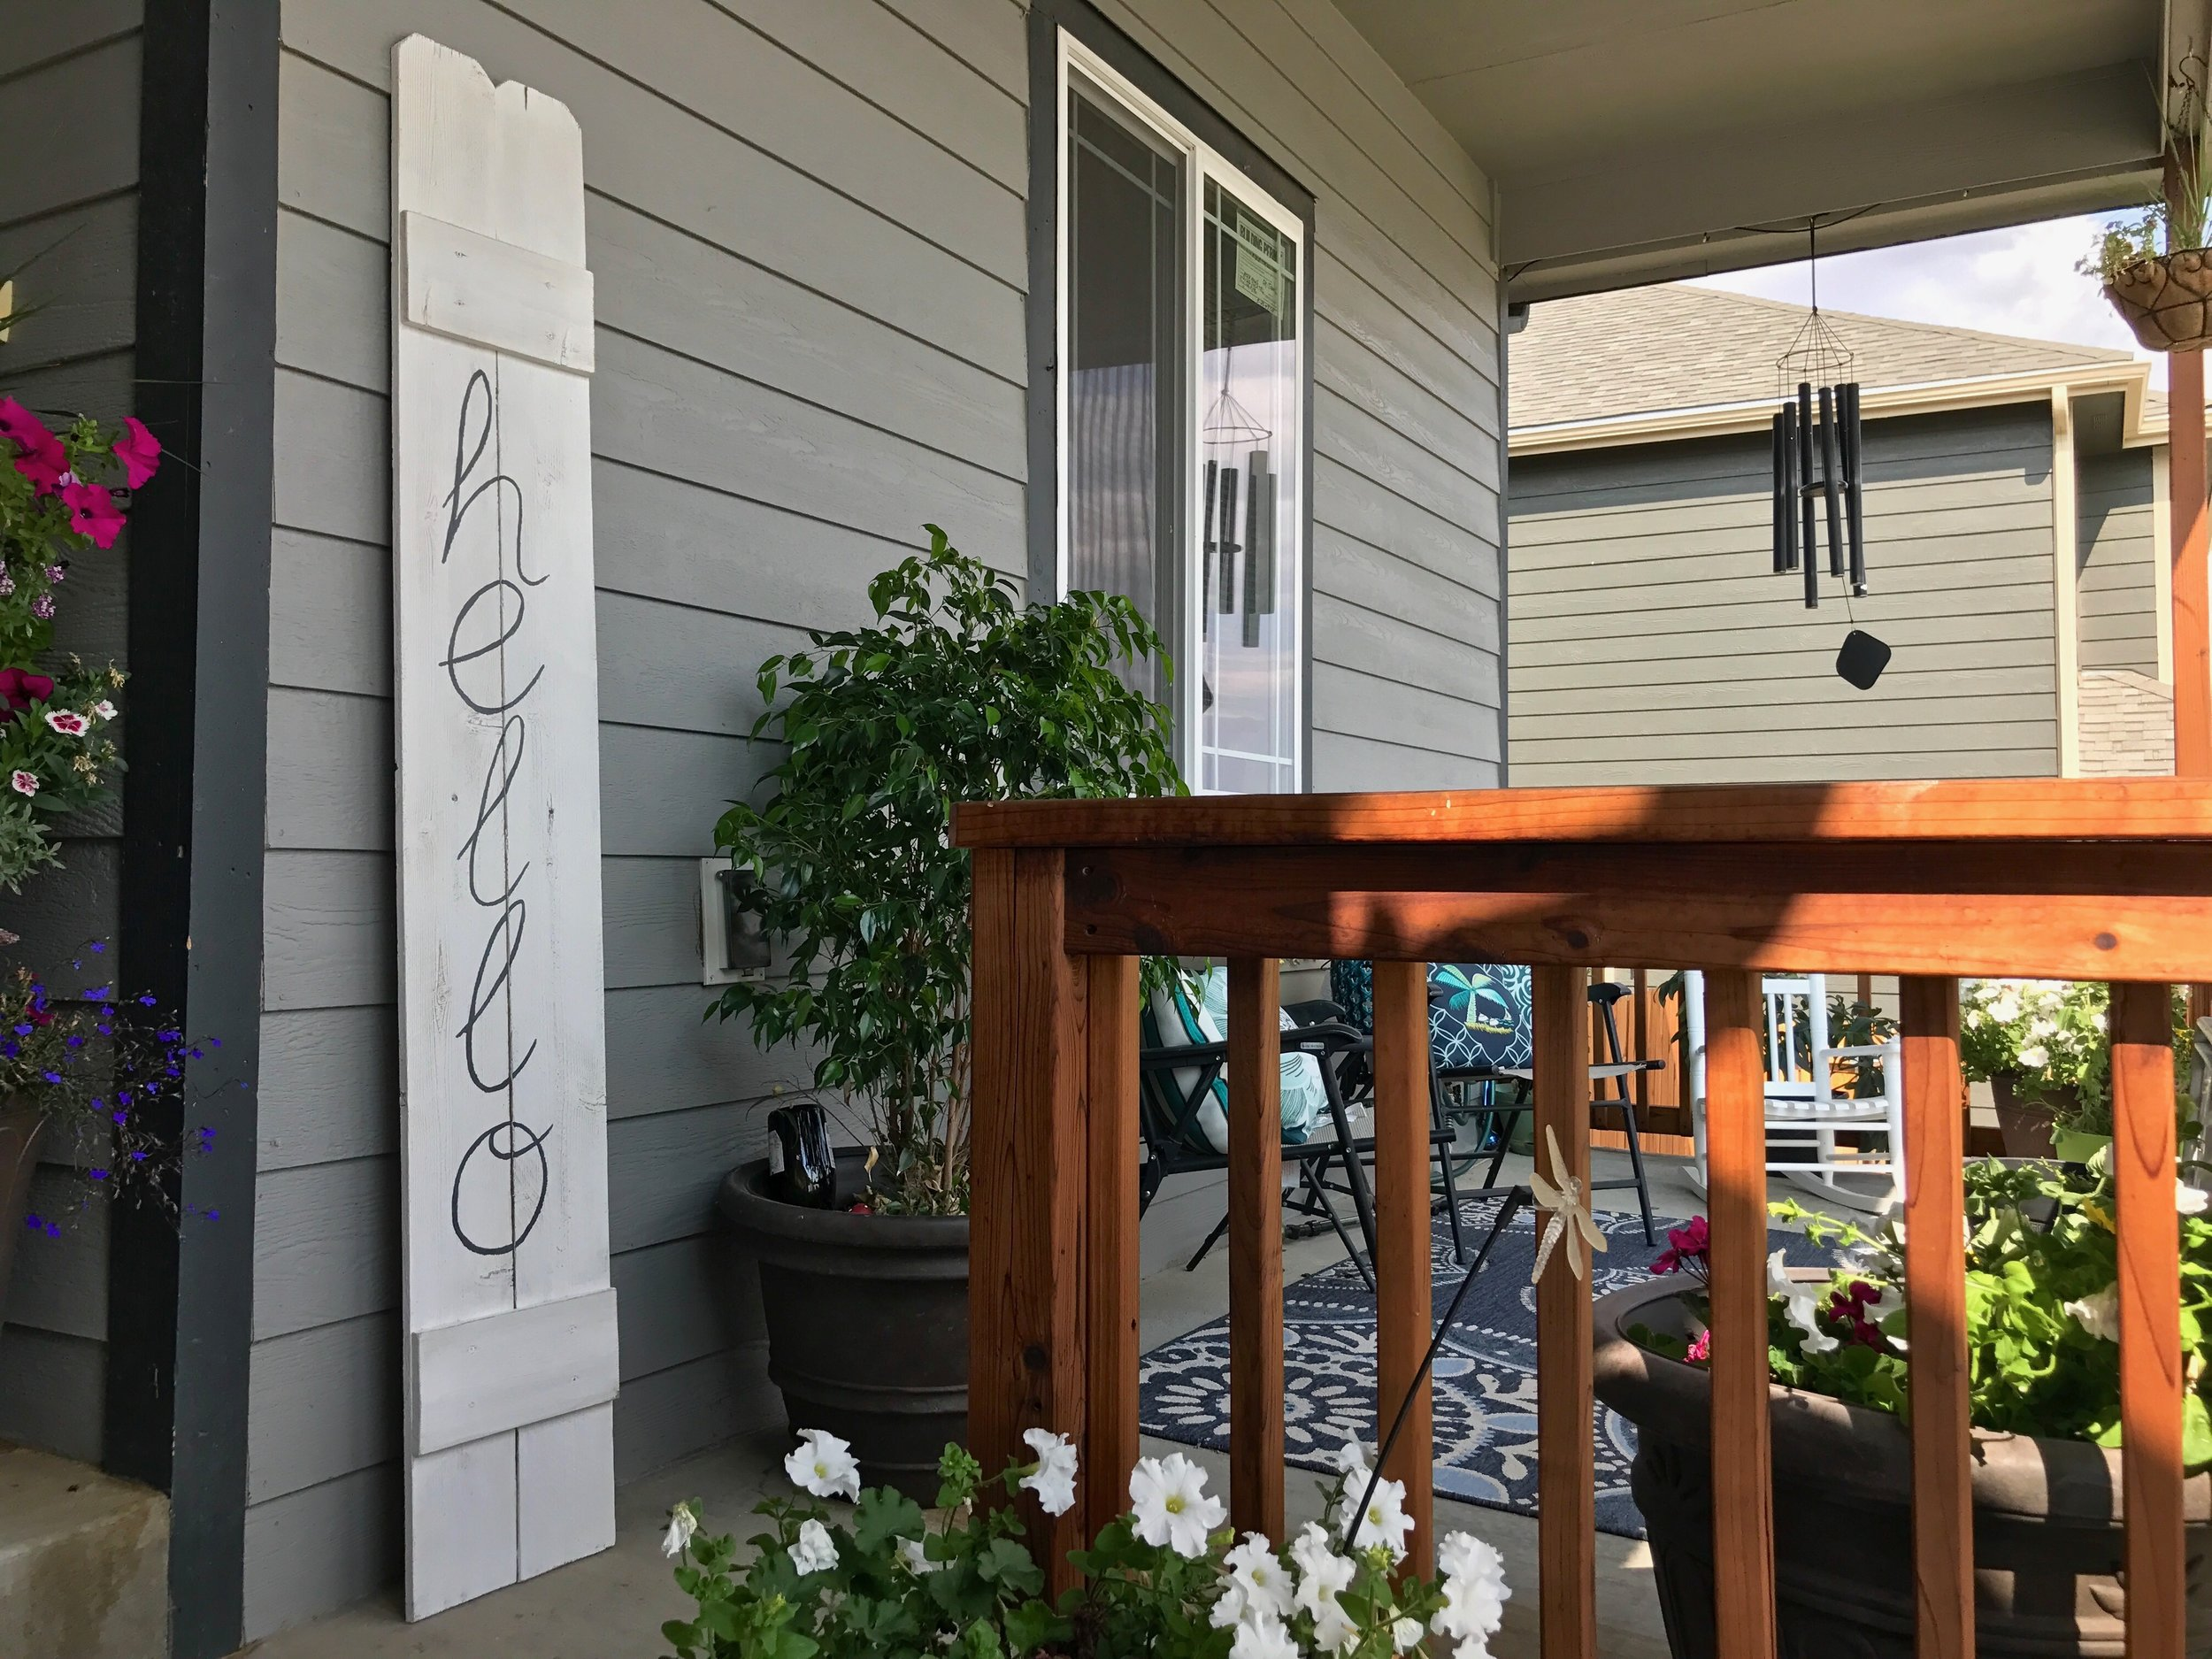 Peonies and Cream - DIY HELLO fence sign front porch display